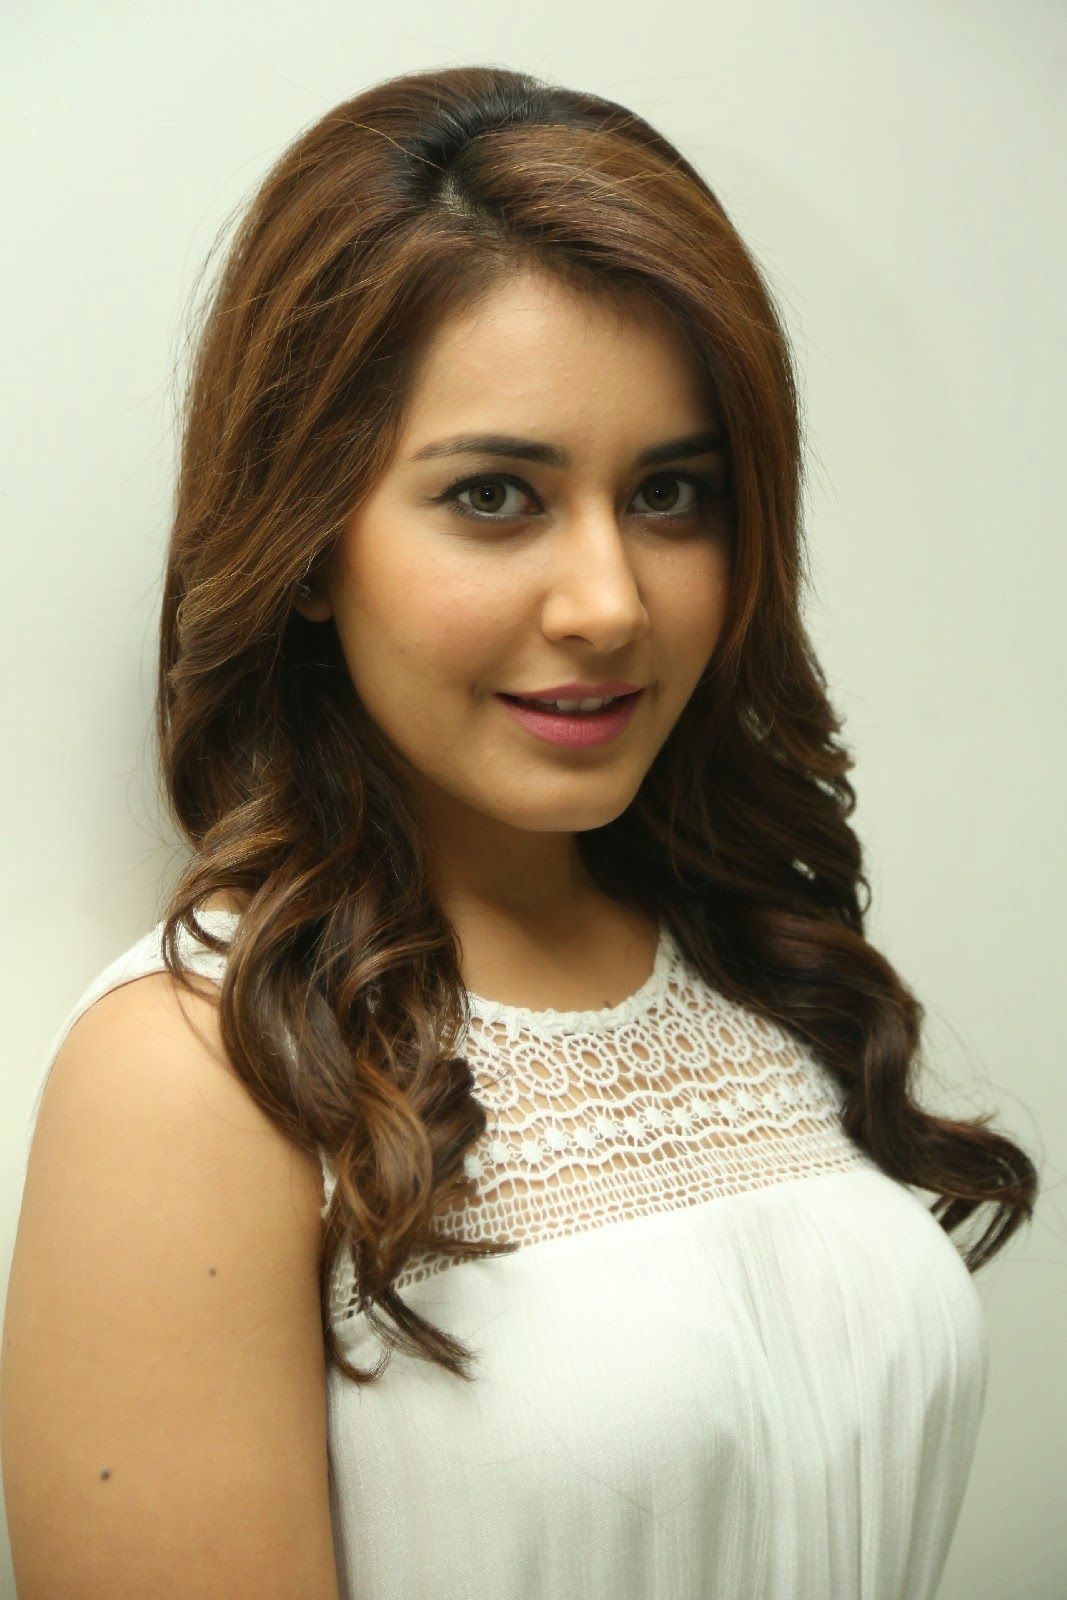 High Quality Bollywood Celebrity Pictures Rashi Khanna -7108